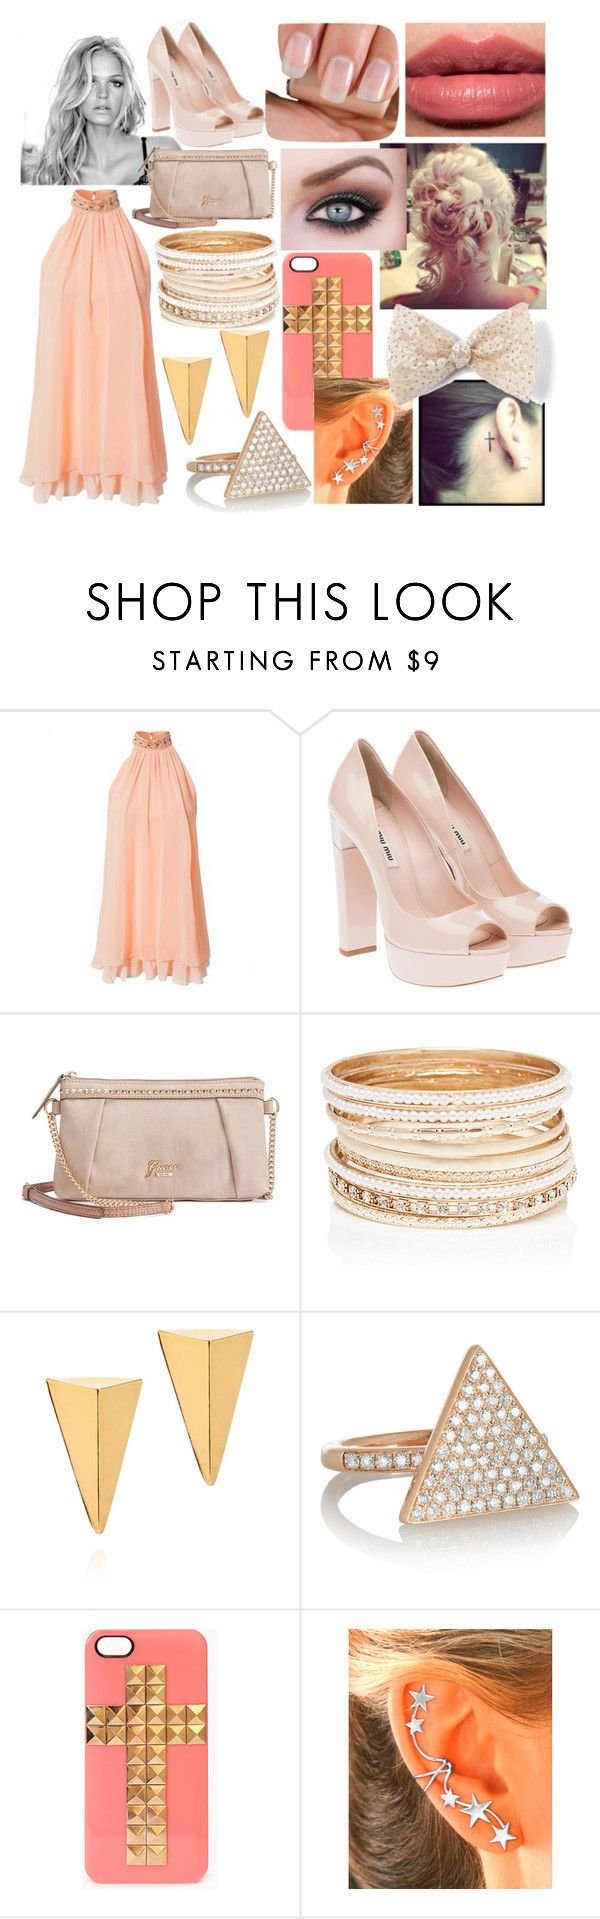 """ellis"" by nothing-better-than-a-riddle ❤ liked on Polyvore featuring Elise Ryan, Miu Miu, GUESS, Forever New, John & Pearl, Anita Ko, Bobbi Brown Cosmetics and Forever 21"